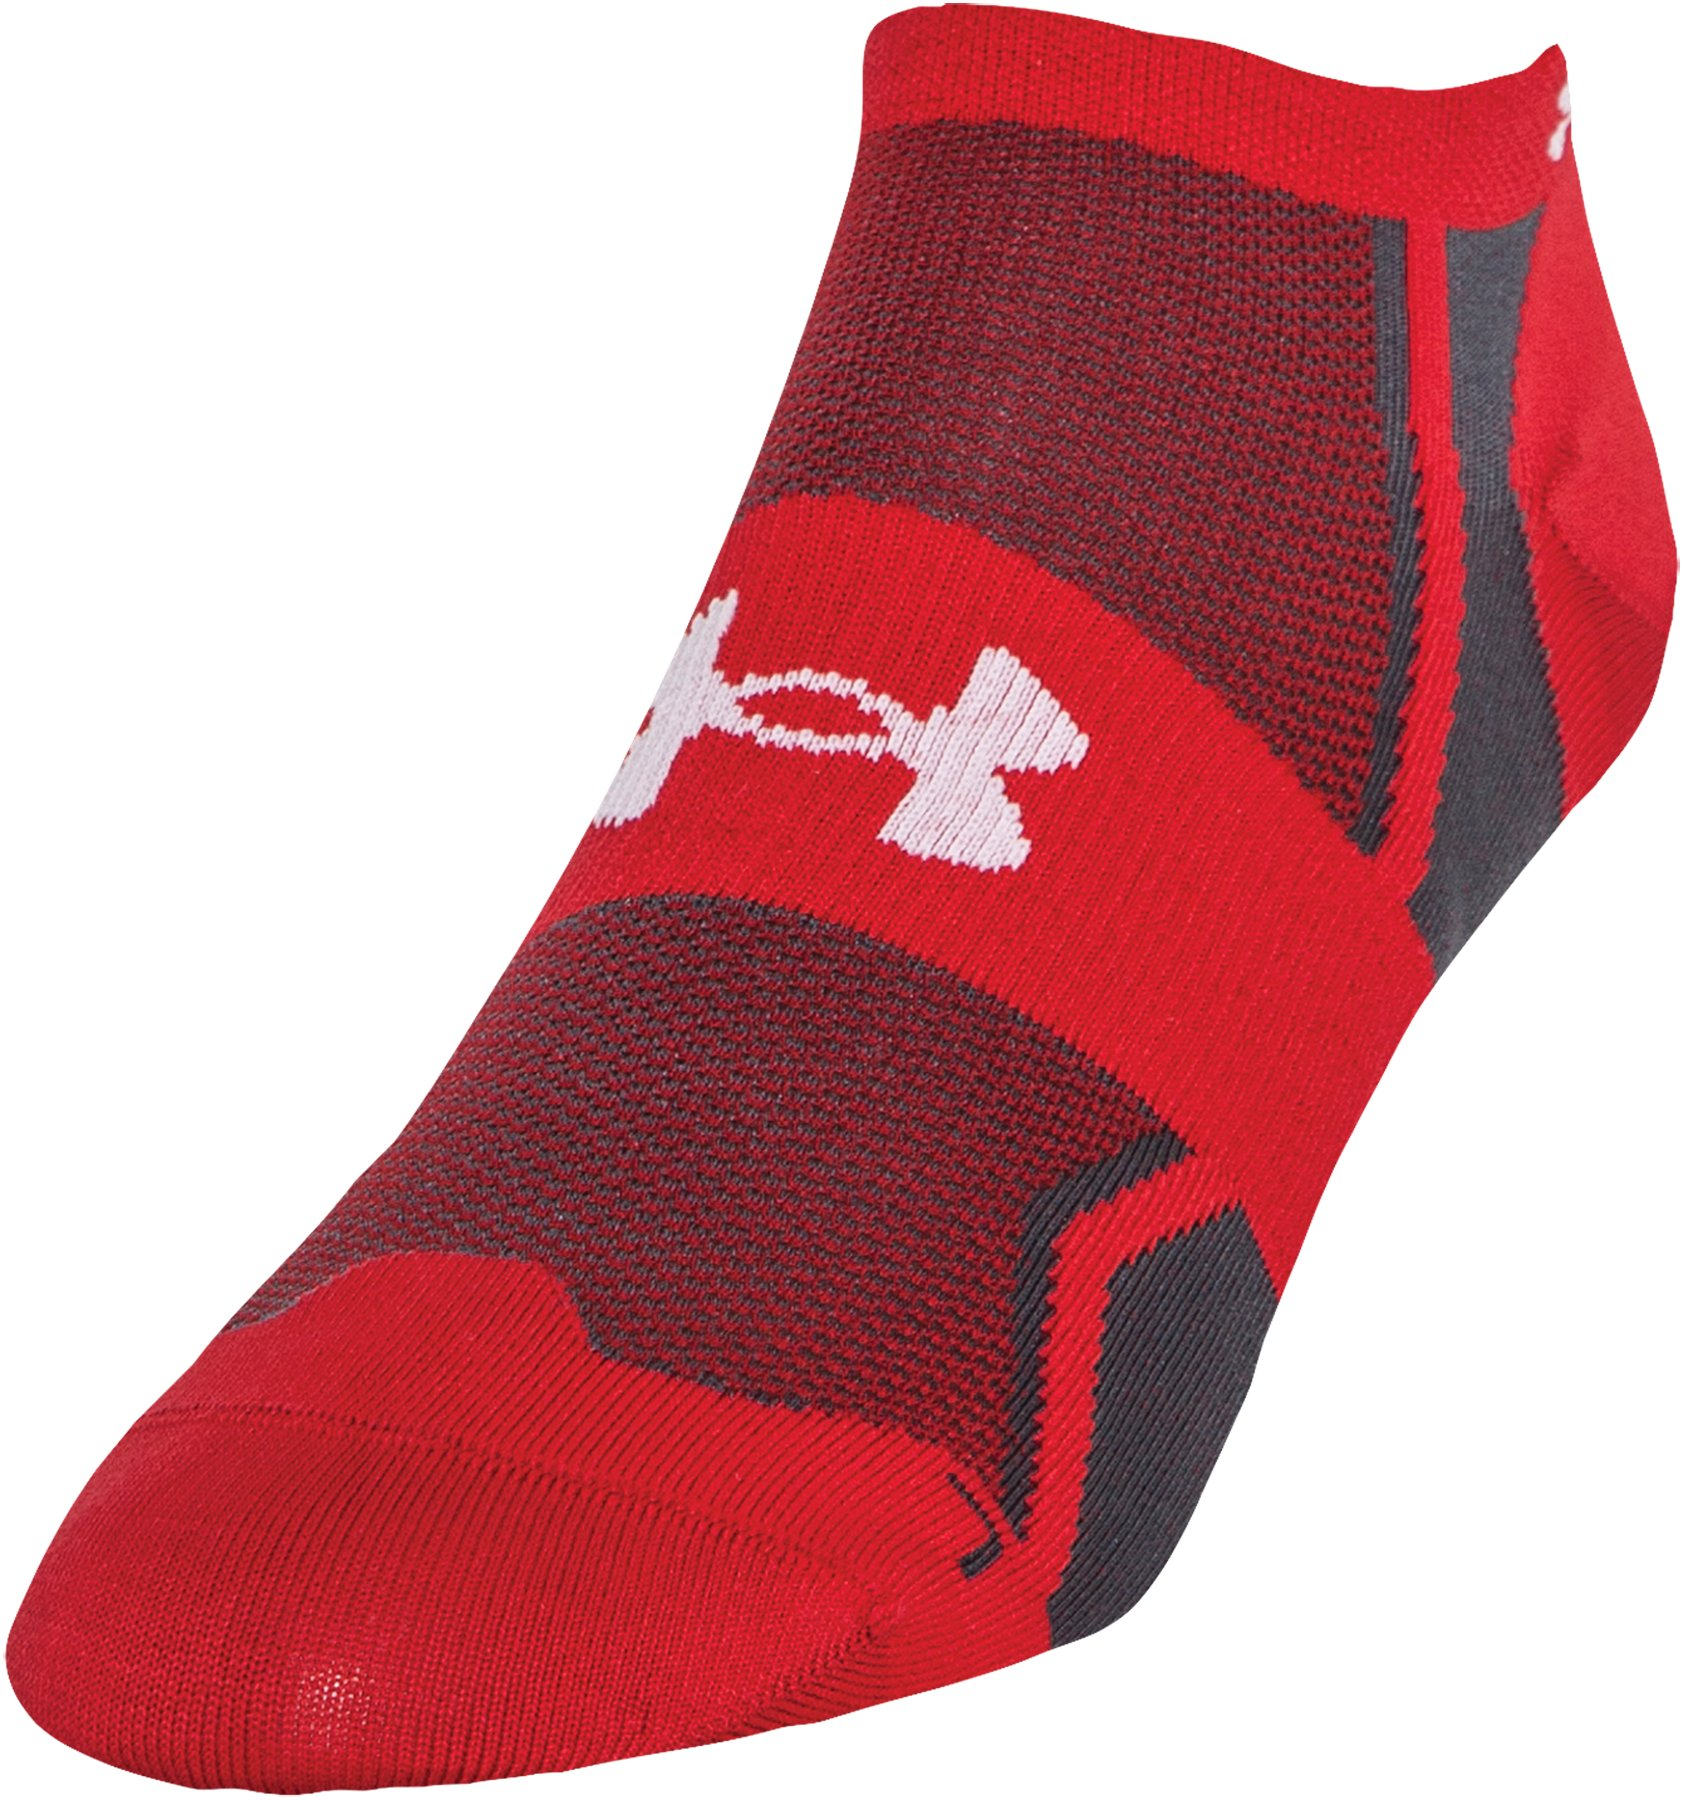 Men's UA SpeedForm® No-Show Socks - 3 for $30, Red